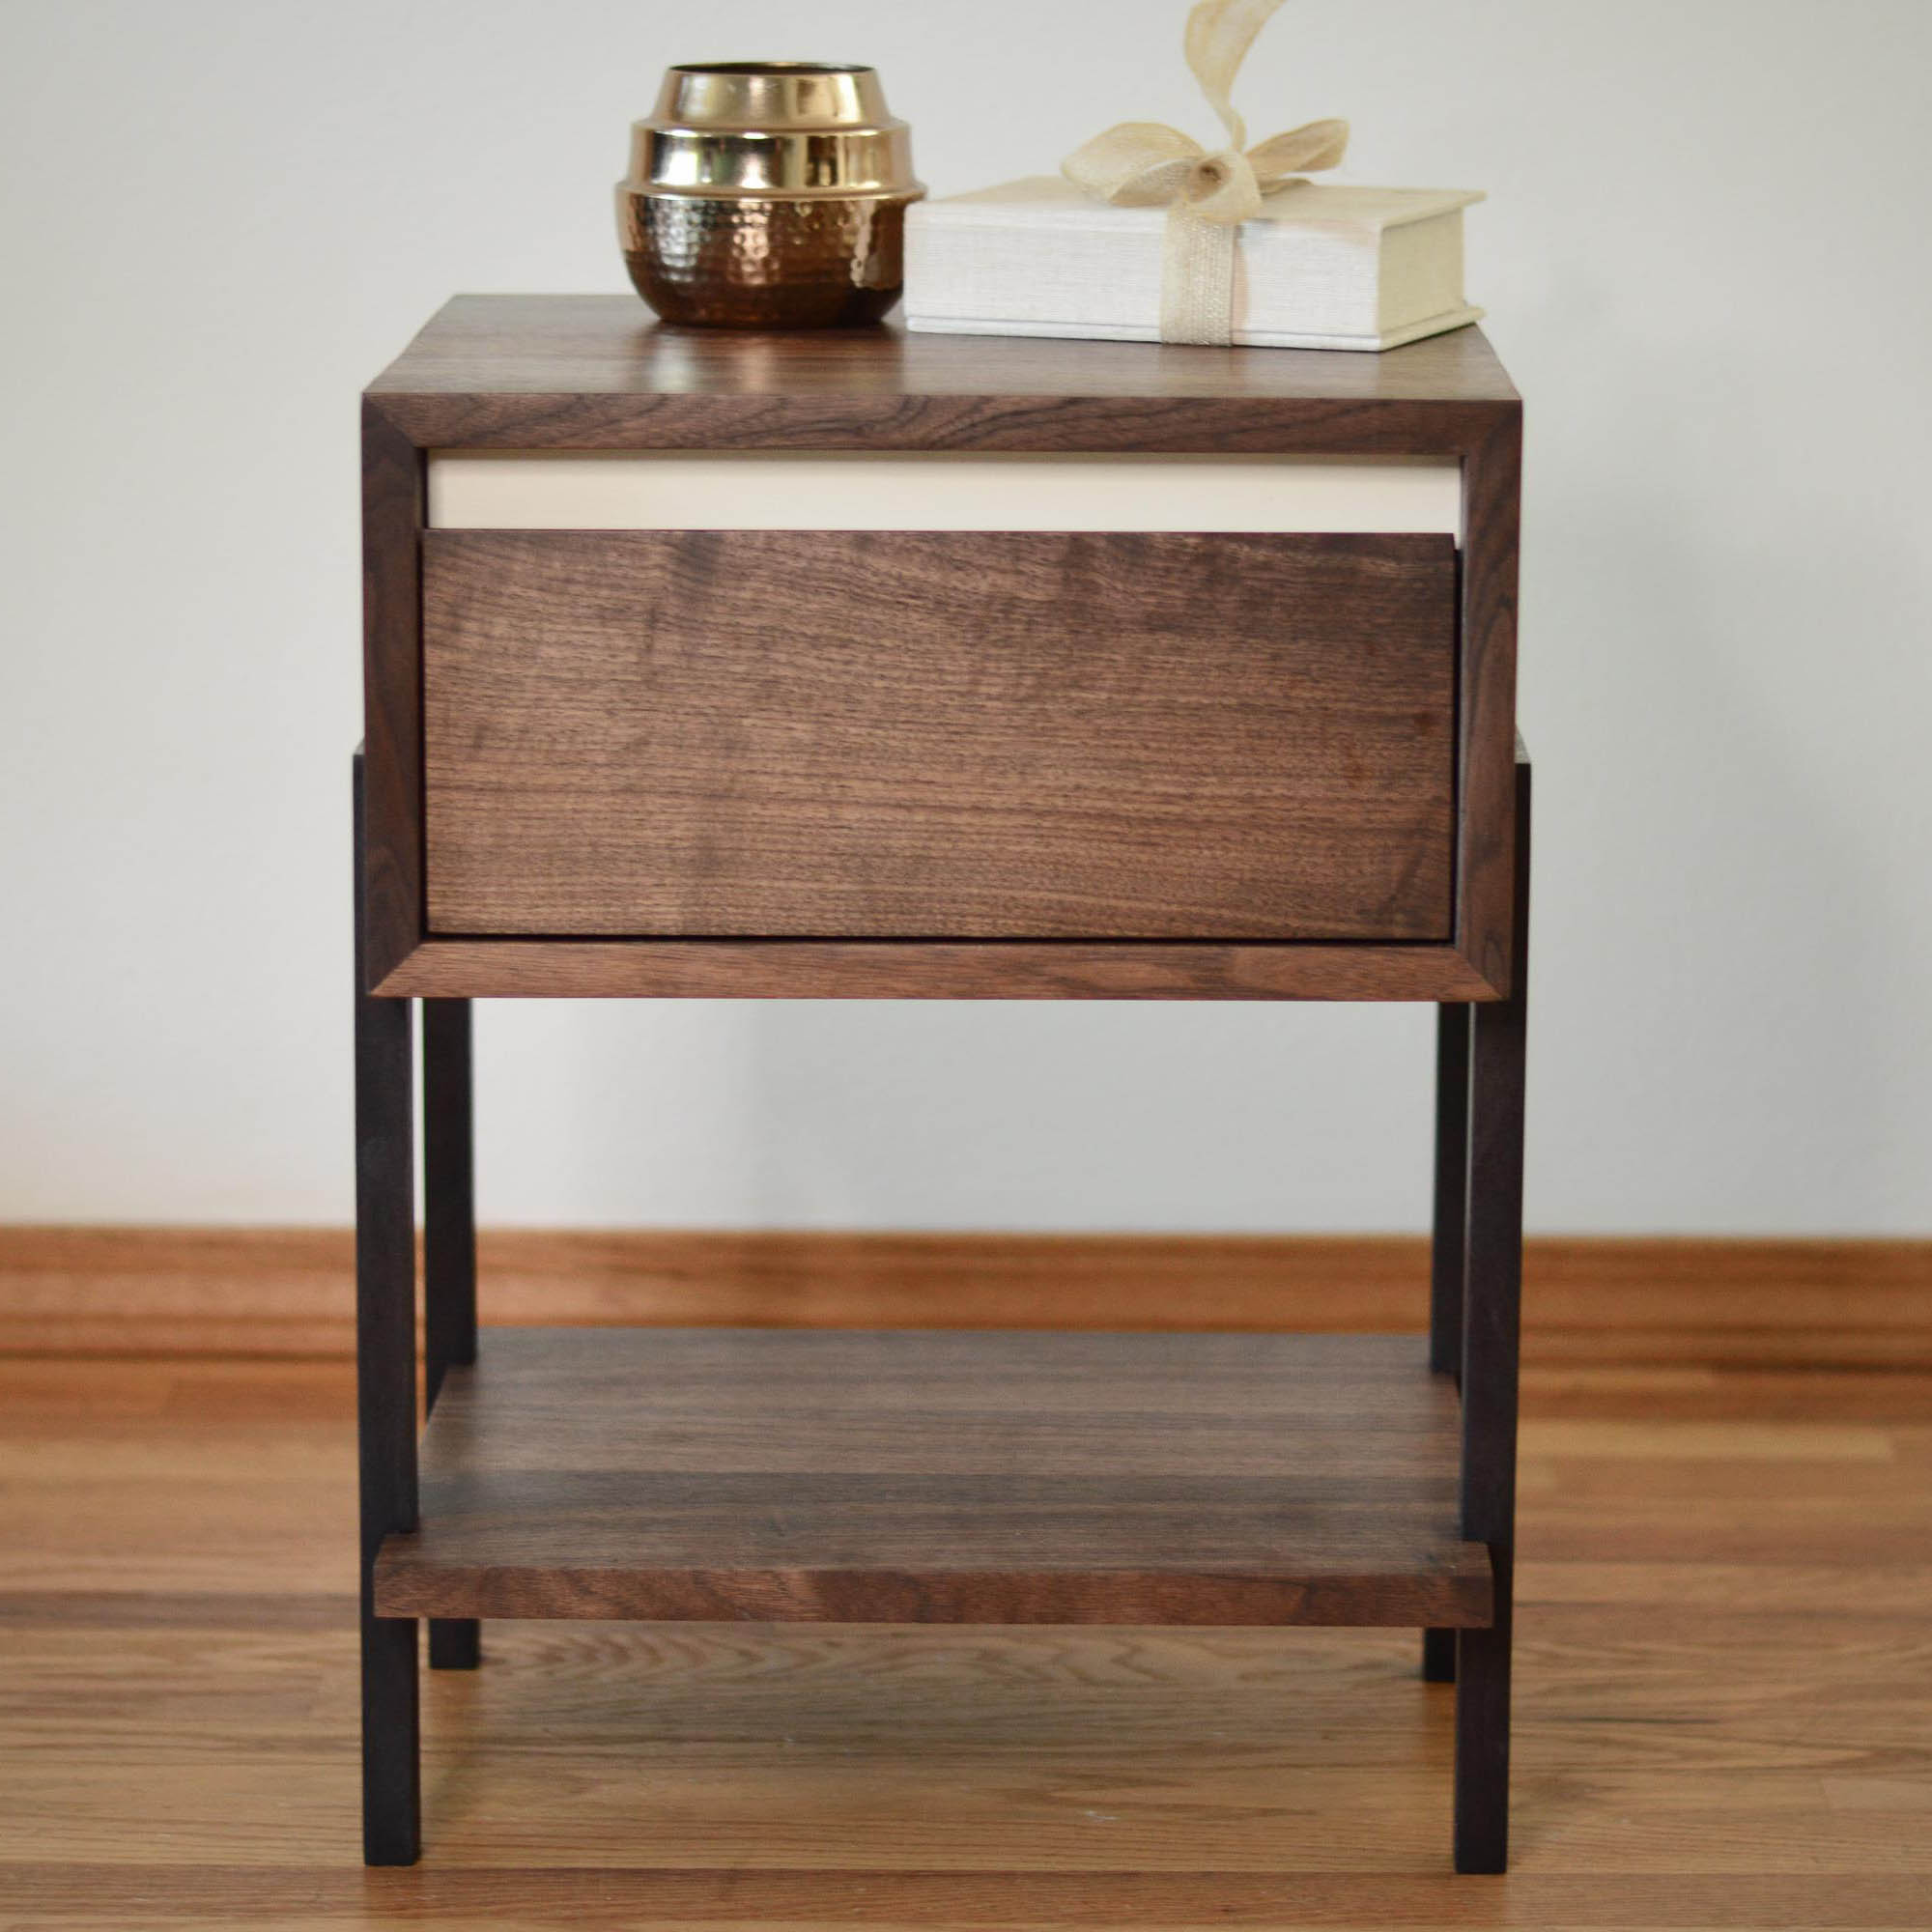 dayton walnut side table white accent thisisurbanmade coffee with gold and silver lamps pottery barn tabletop italian unique wall clocks round metal wood top jofran small storage